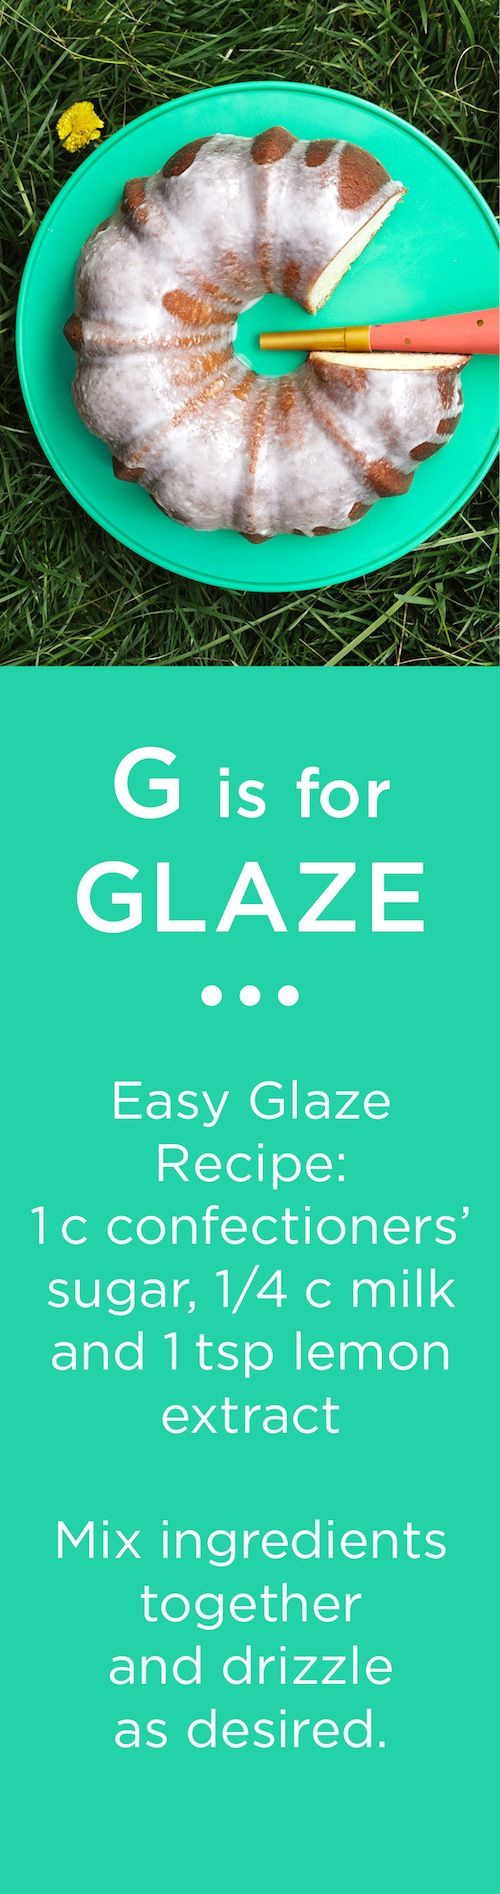 G is for GLAZE